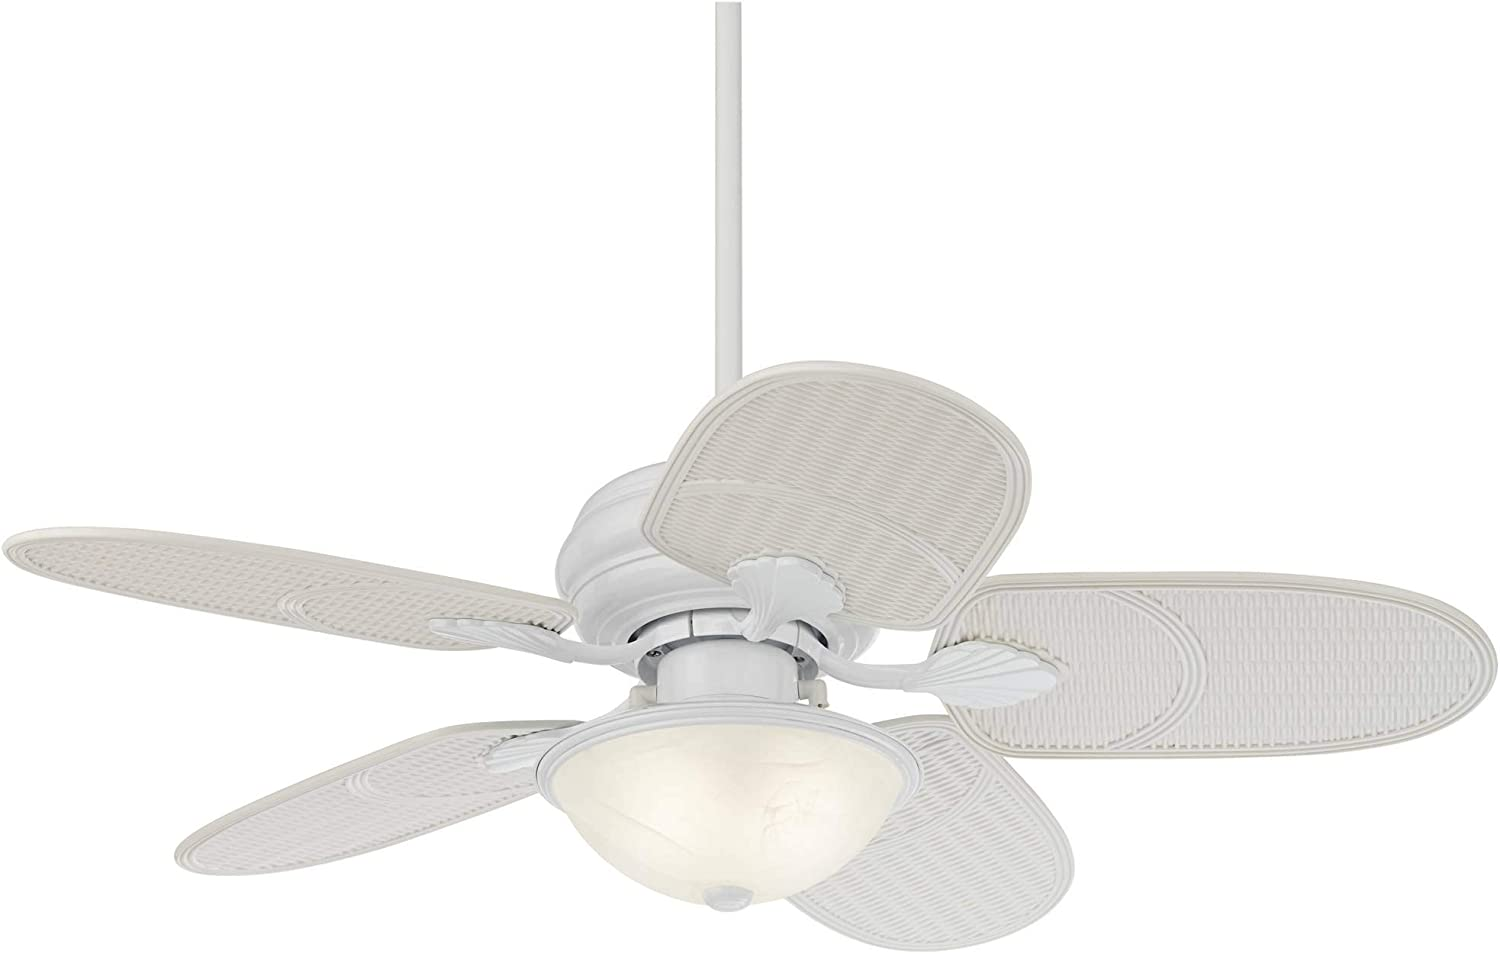 Buy 42 Tropical Coastal Country Cottage Indoor Outdoor Ceiling Fan With Light Kit Led White Rattan Blades Frosted White Glass Wet Rated For Patio Exterior House Porch Gazebo Garage Barn Casa